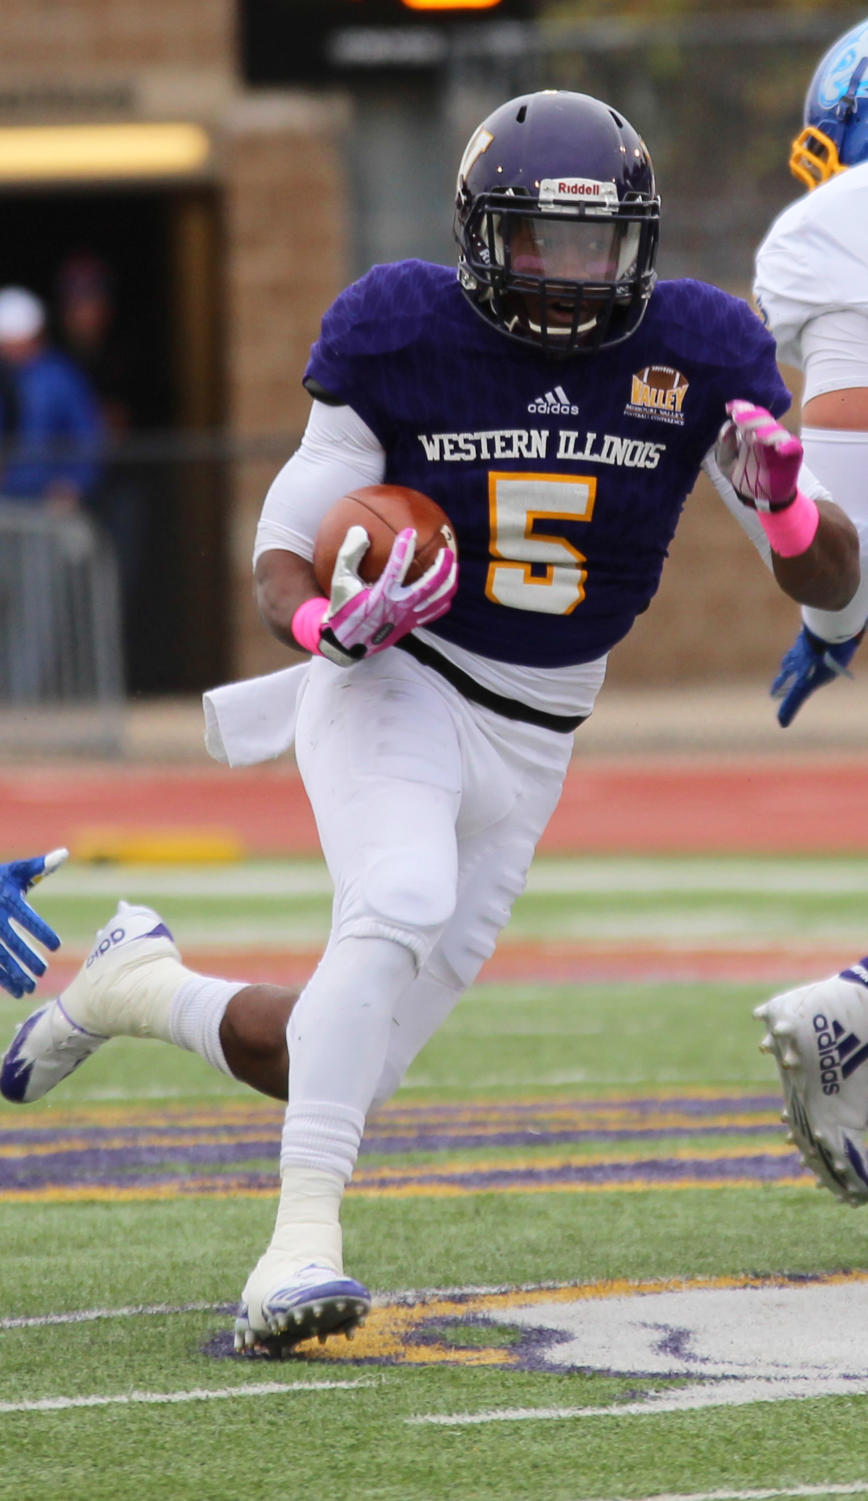 Seteve McShane bursting into open field on a two-touchdown day against South Dakota State University.